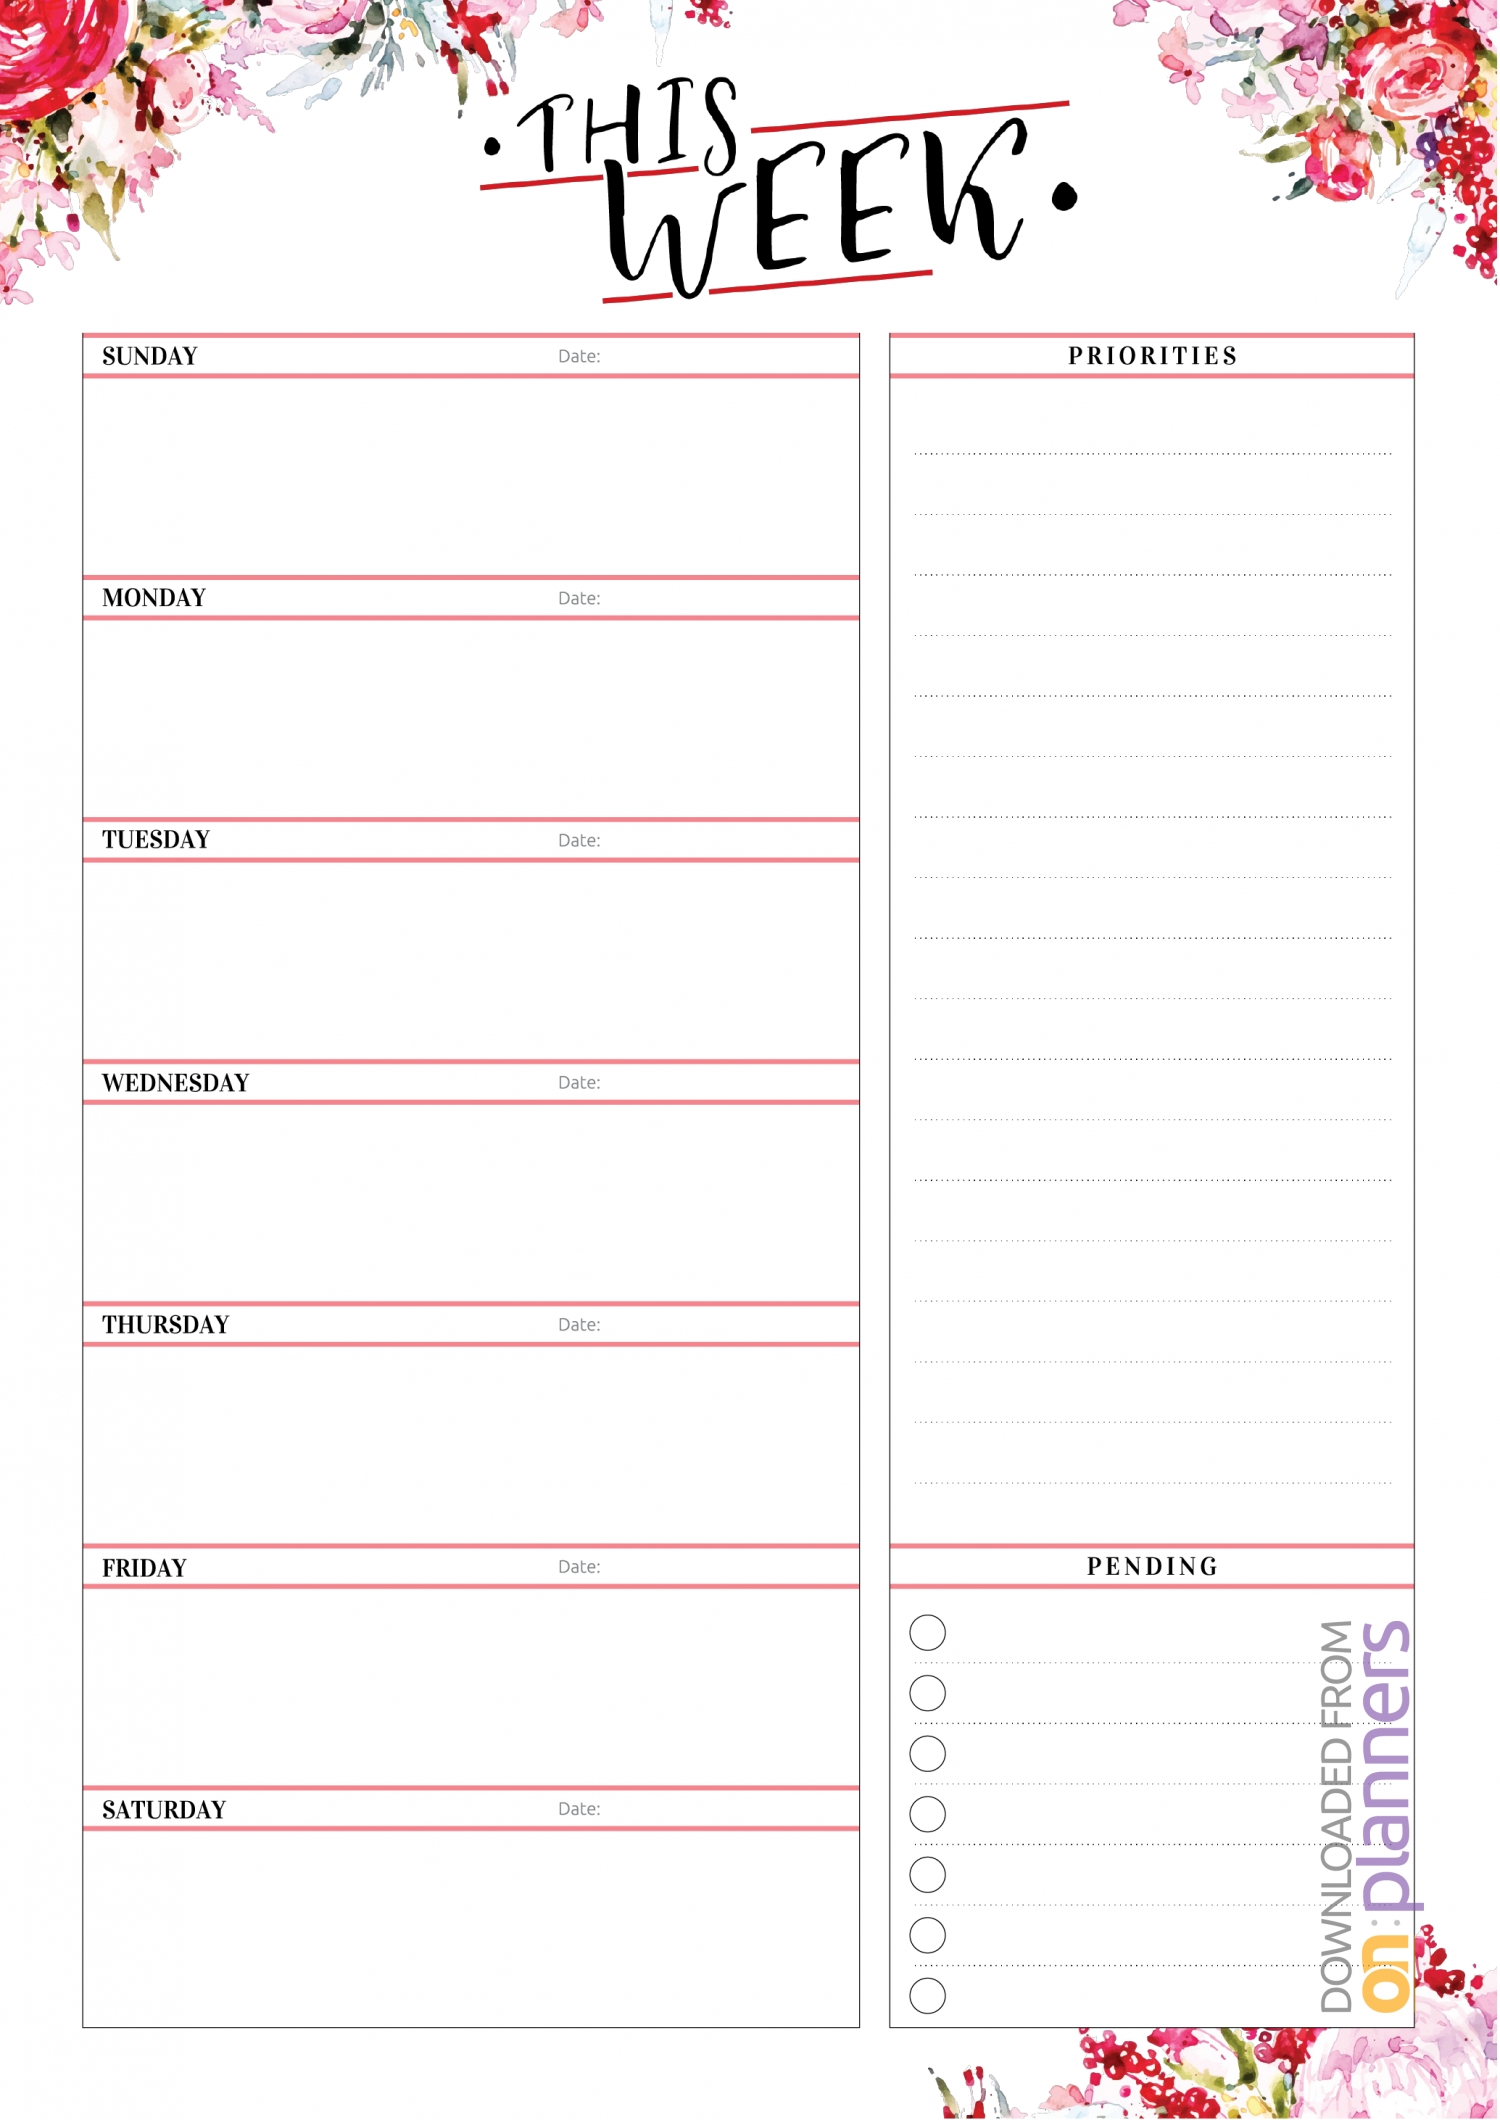 Download Printable Weekly Planner With Priorities Pdf throughout Pdf Free Monday - Friday Weekly Planner